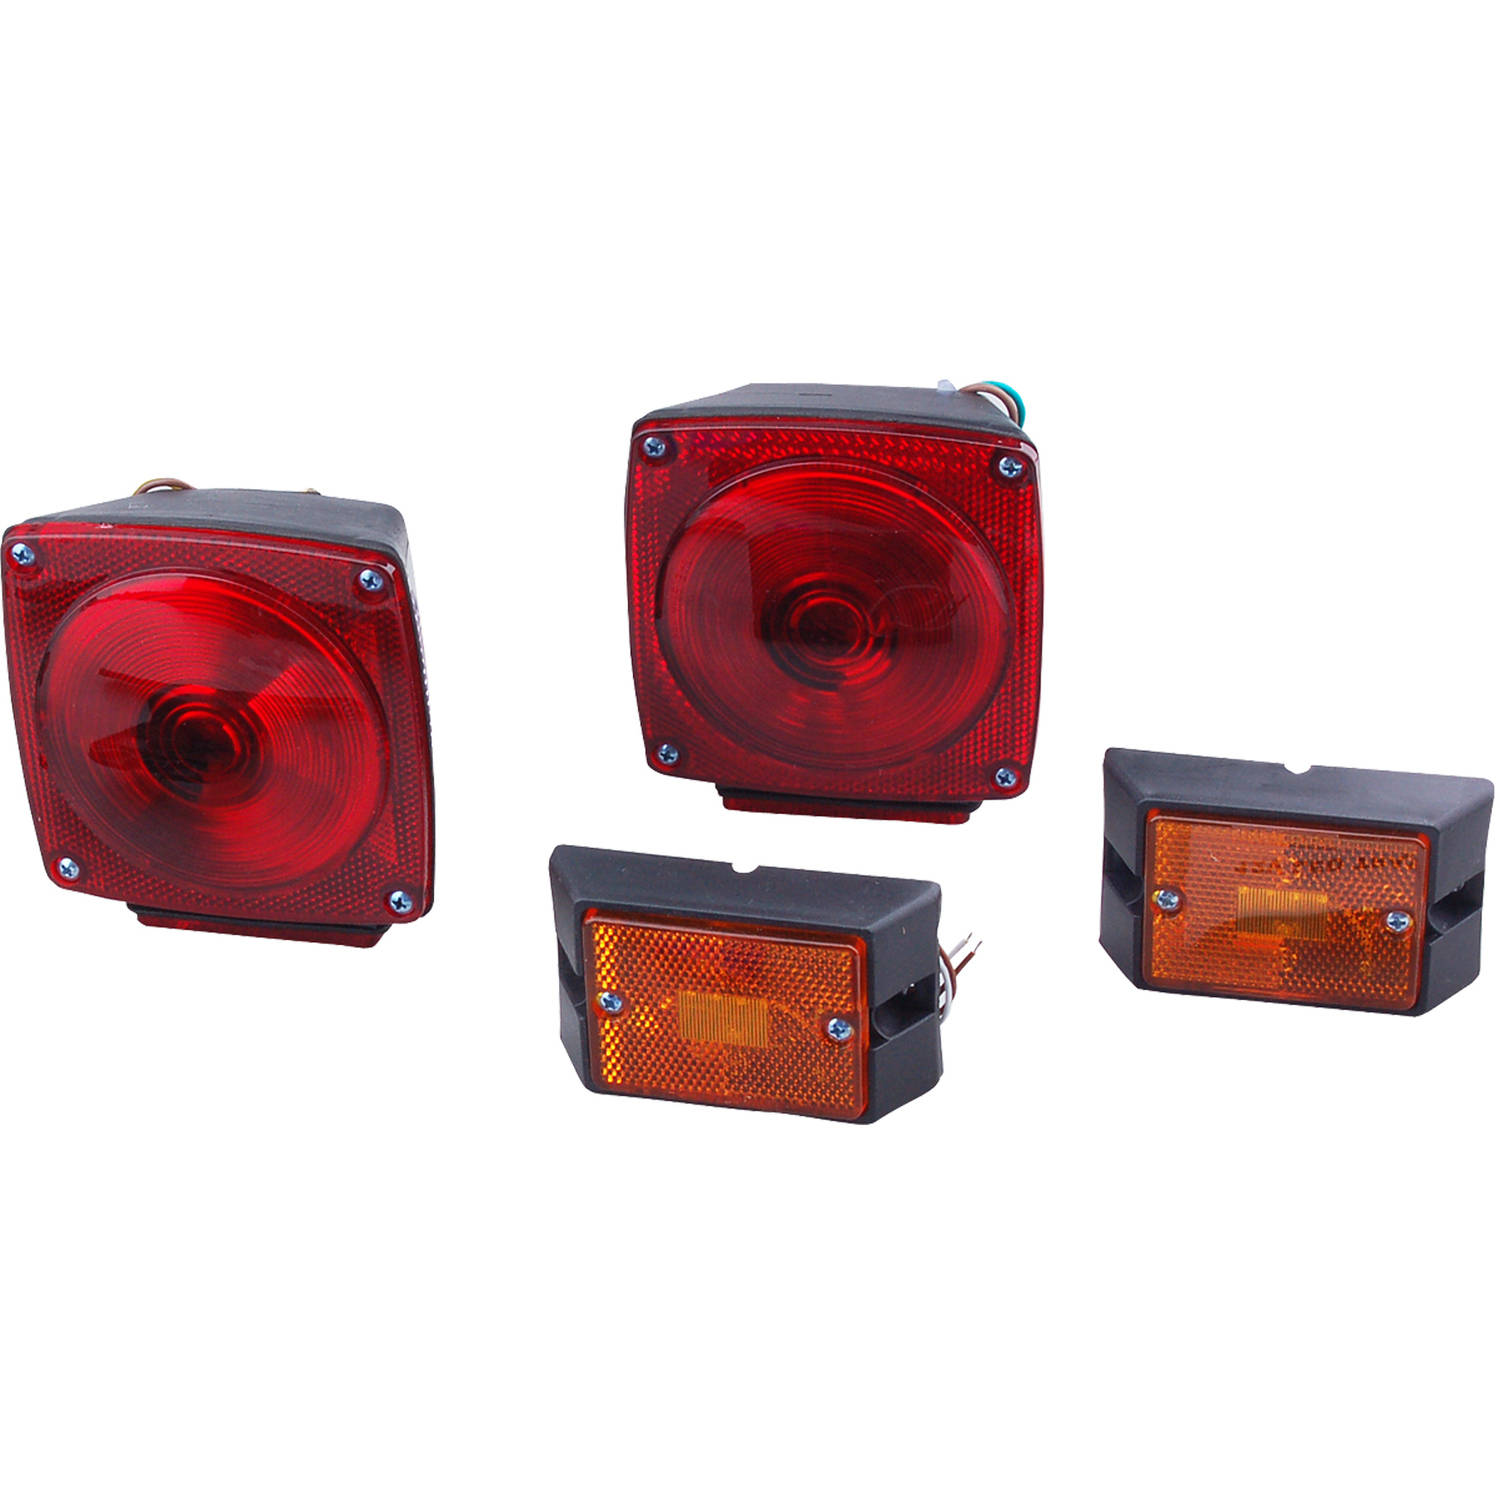 Max Load 12 Volt Deluxe Trailer Light Kit